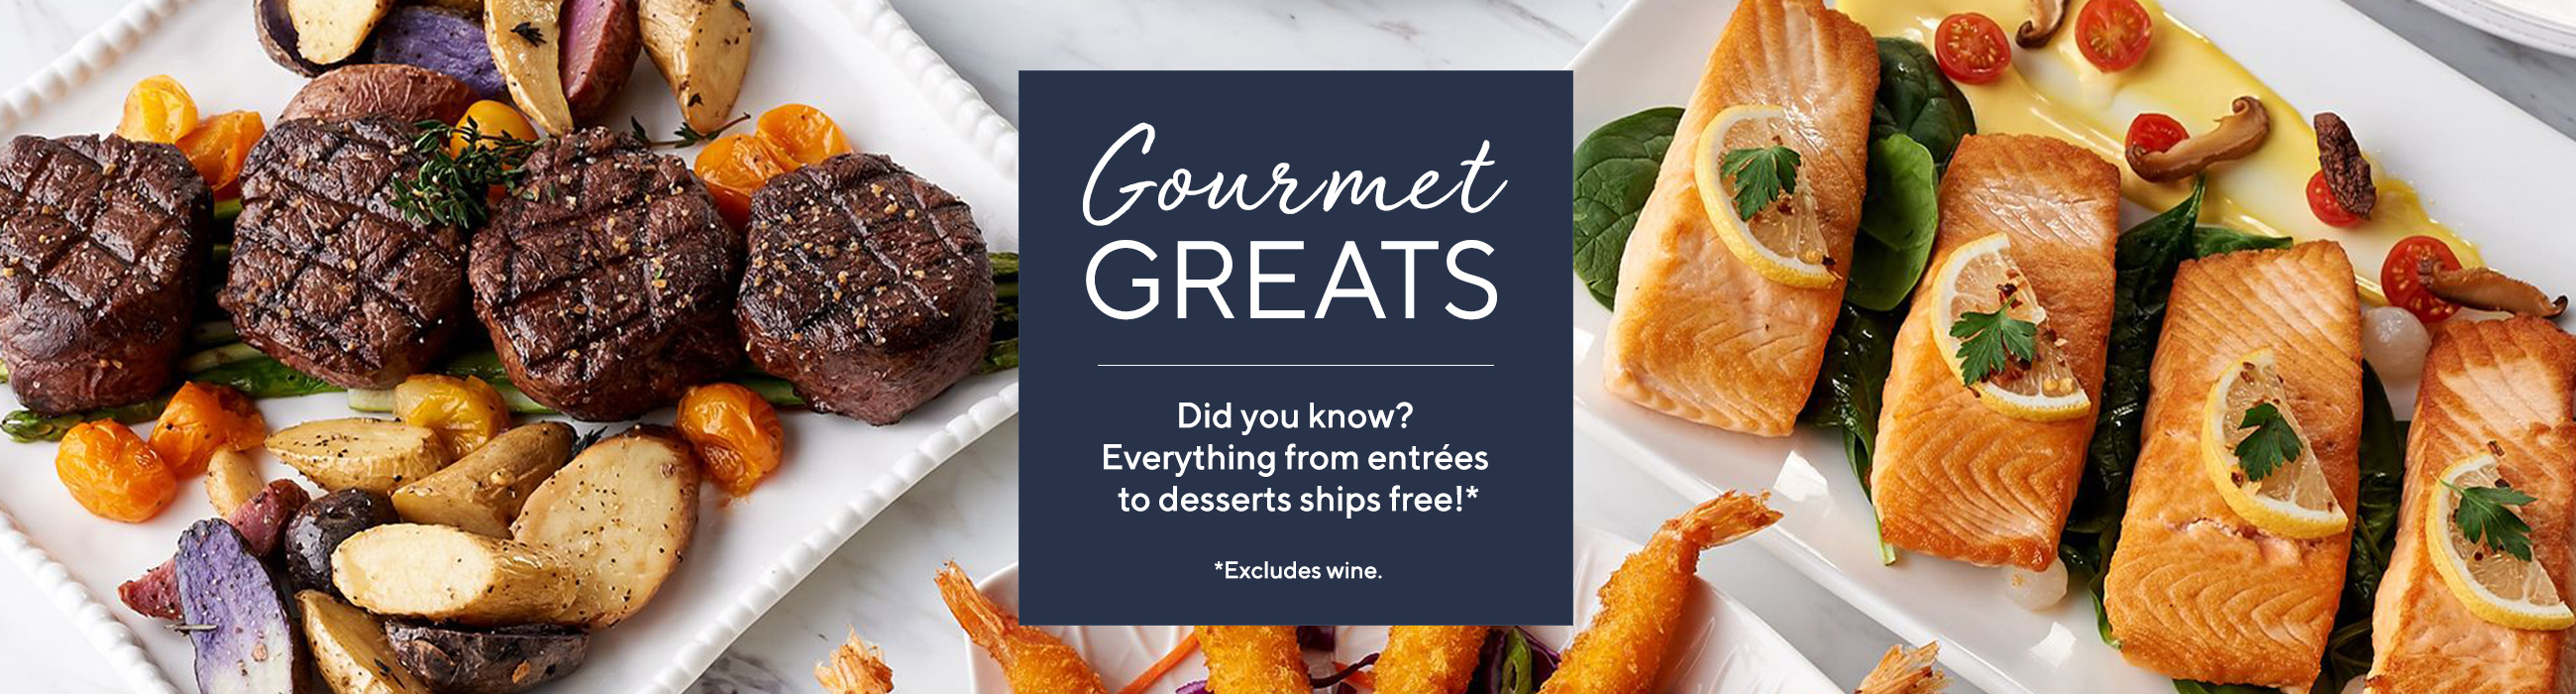 Gourmet Greats  Did you know? Everything from entrées to desserts ships free!*  *Excludes wine.